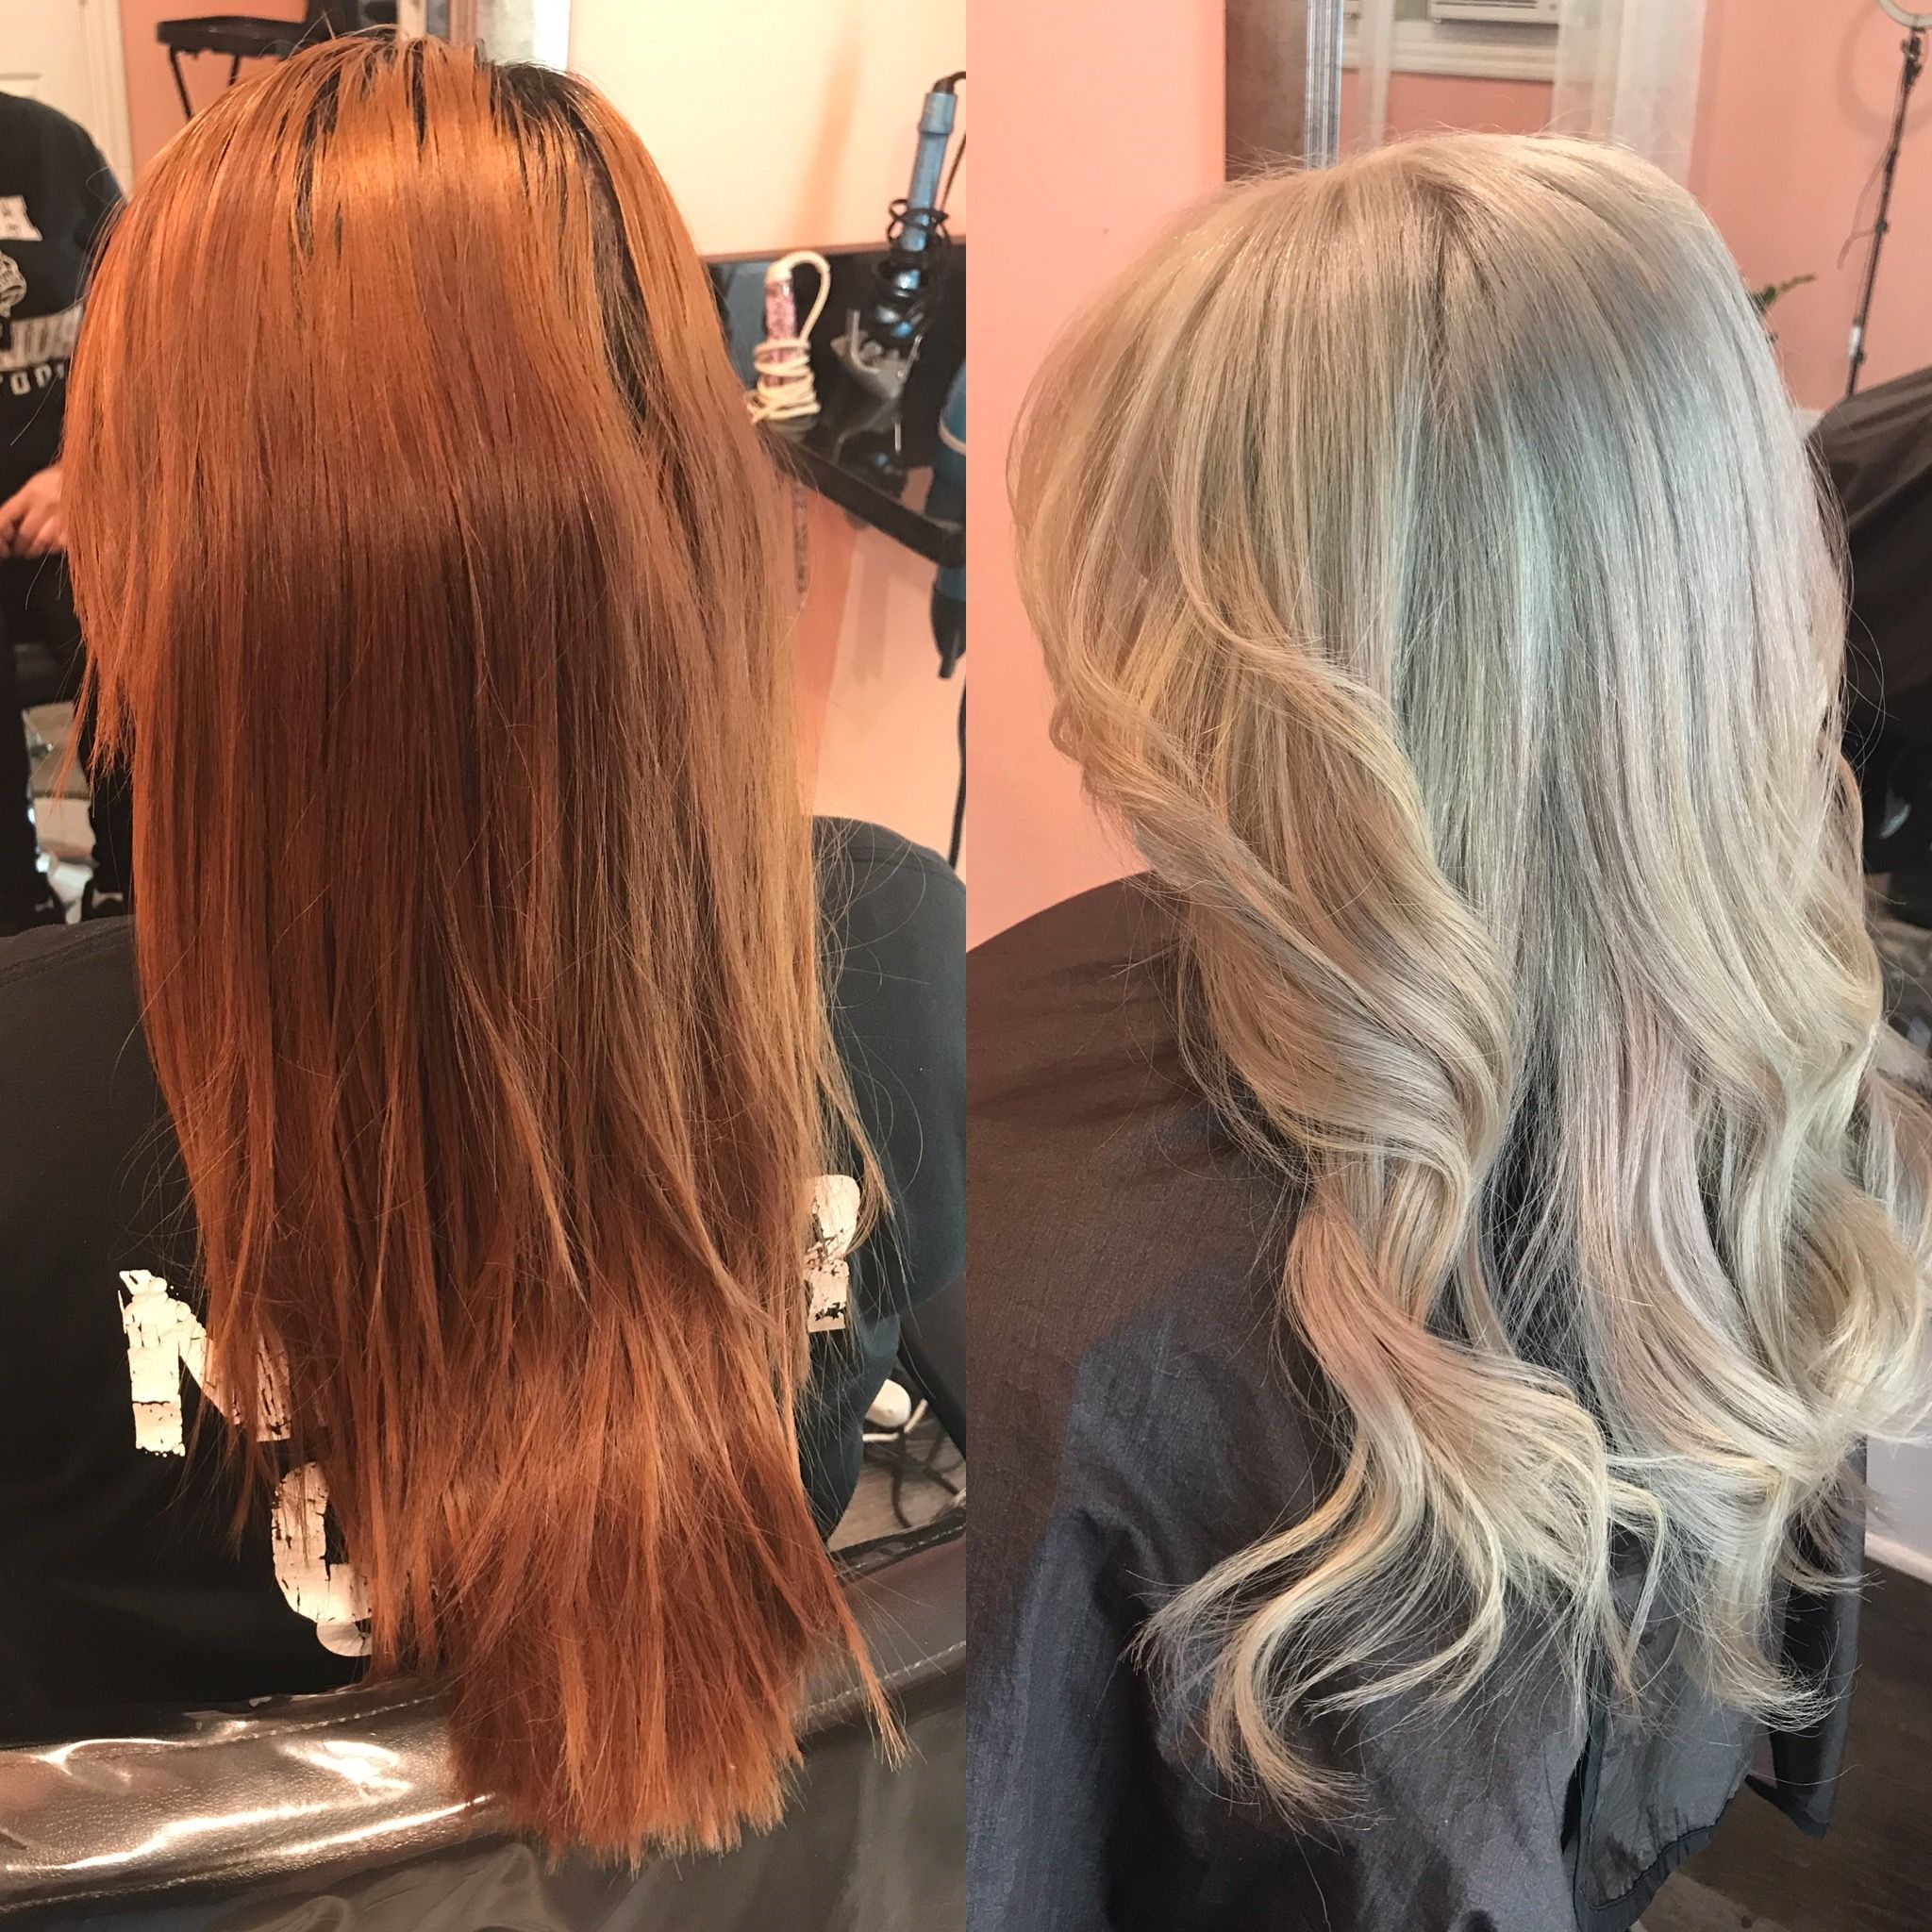 Color Correction In 2020 Hair Color Remover How To Remove Red Hair Dye Color Correction Hair